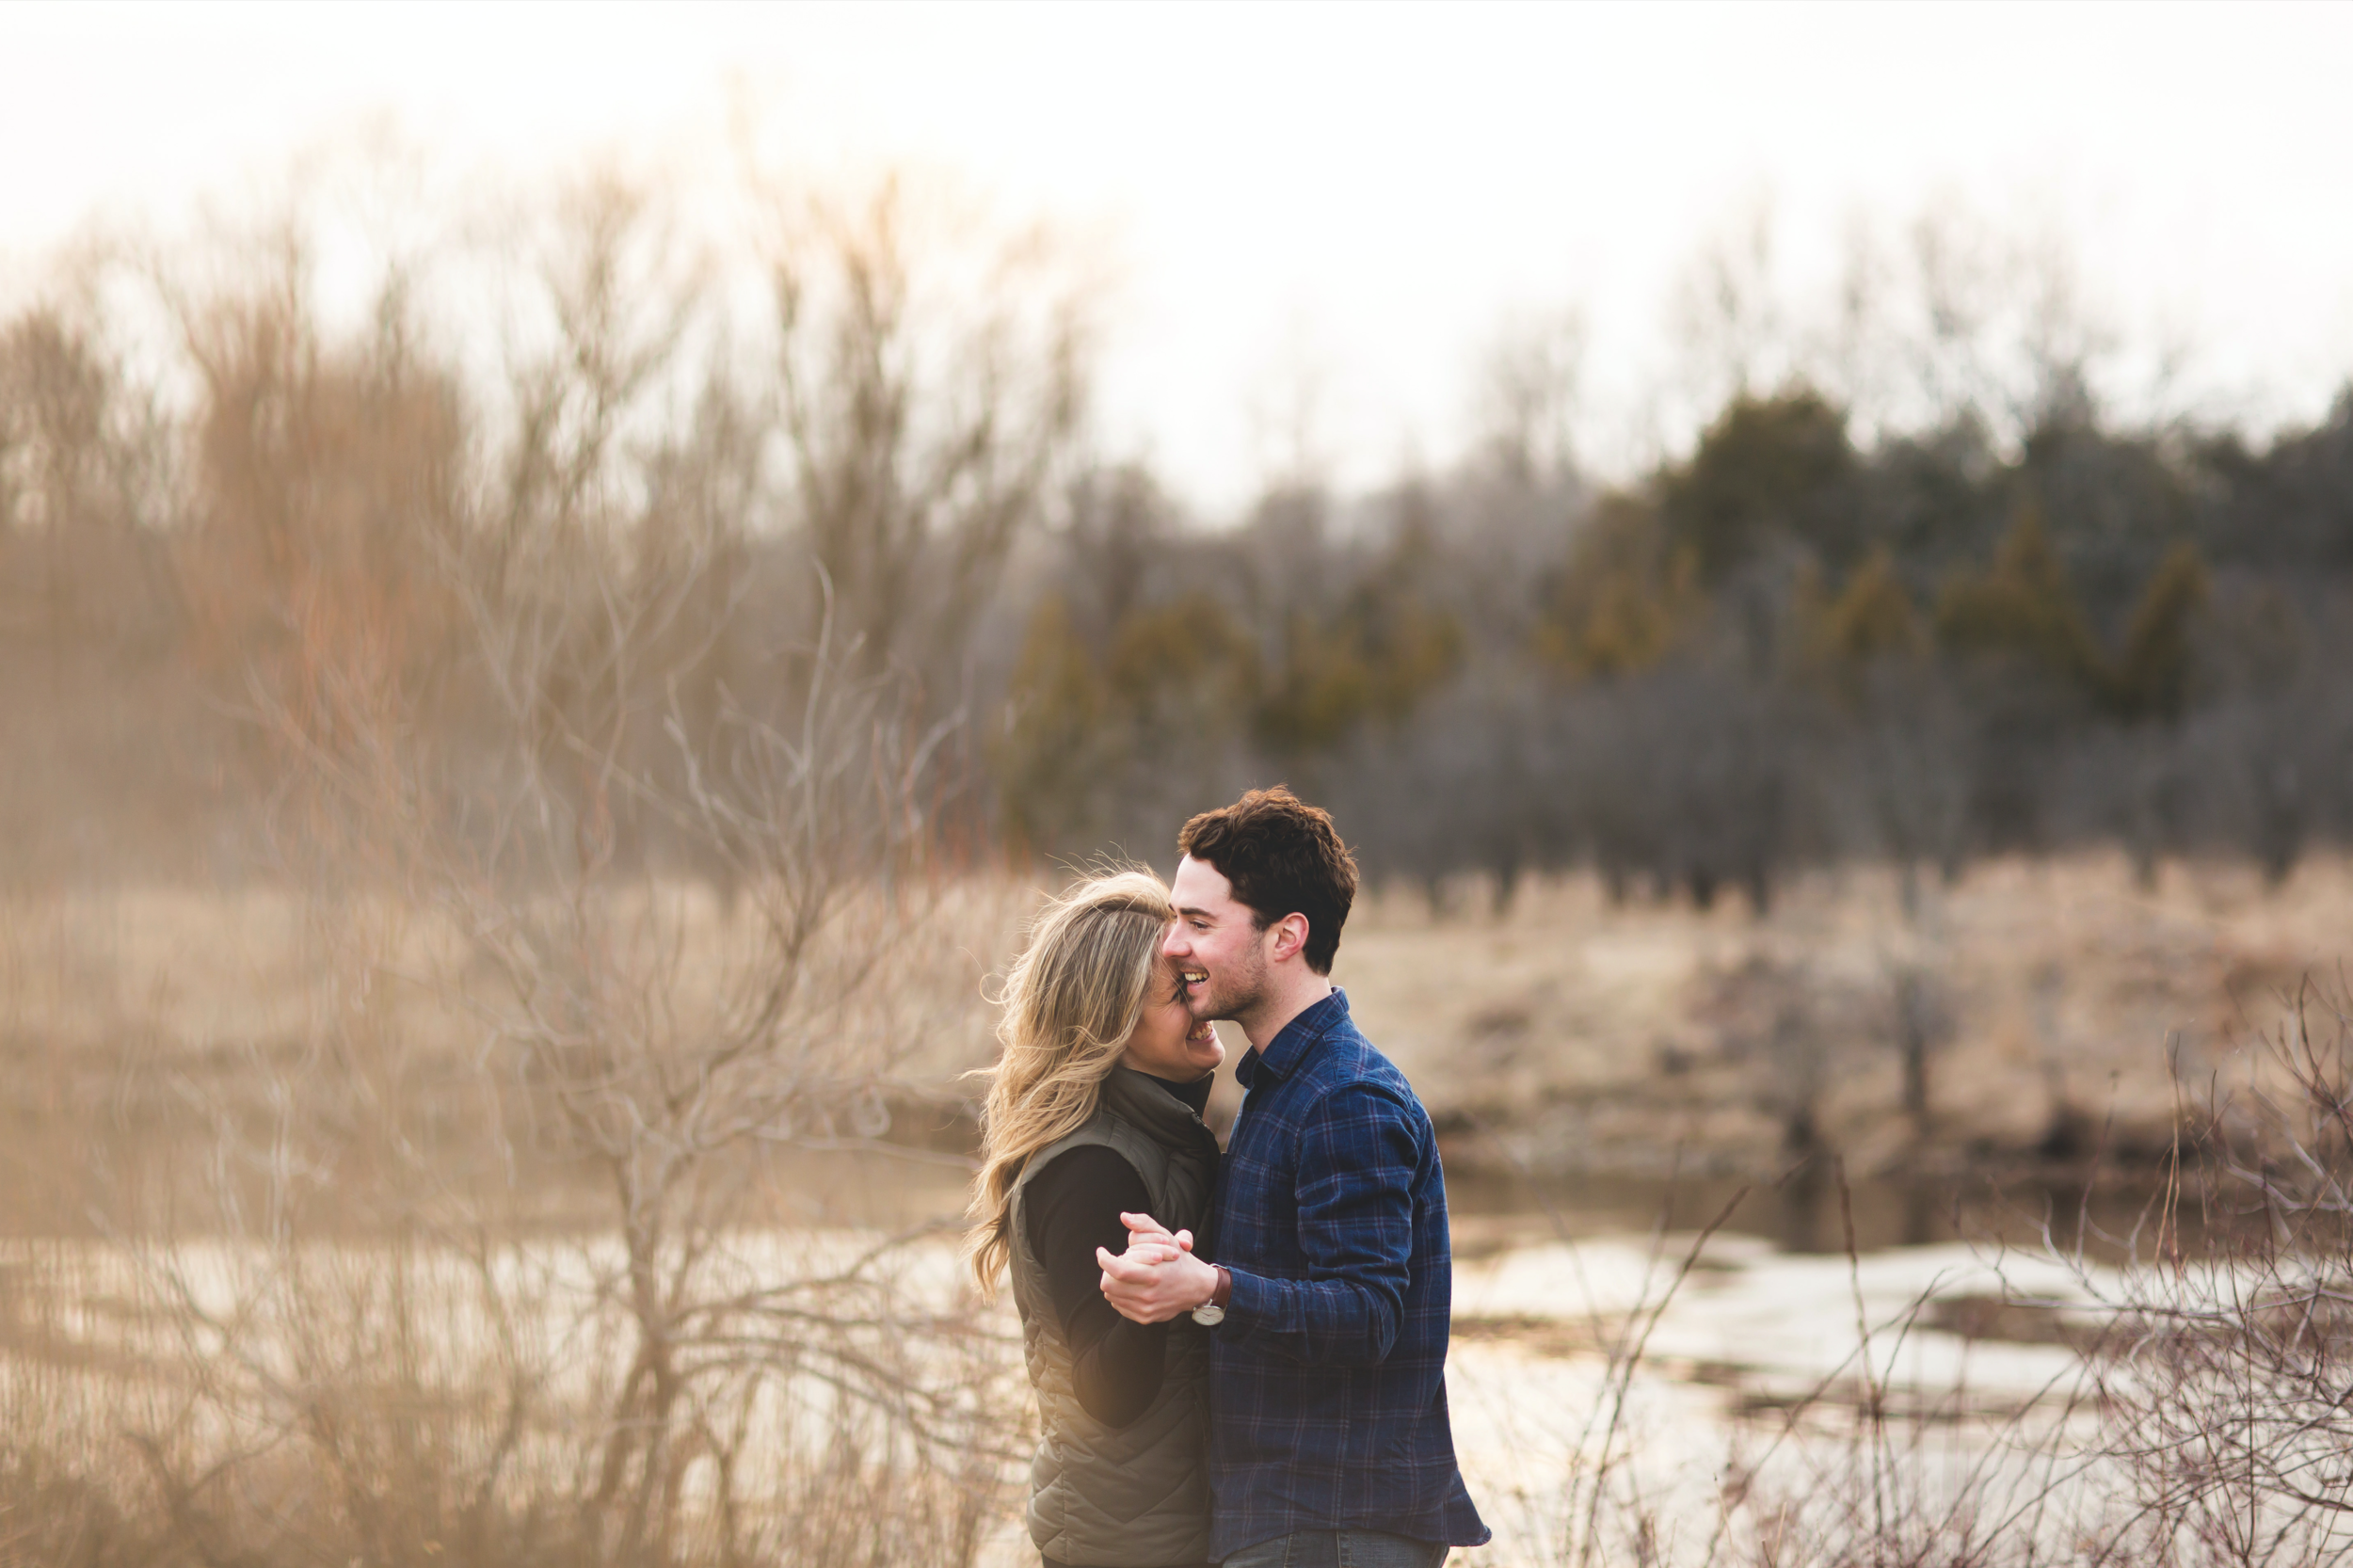 Engagement-Session-Photographer-Guelph-Lake-Hamilton-Toronto-Niagara-Photography-Moments-by-Lauren-Photo-Image-13.png